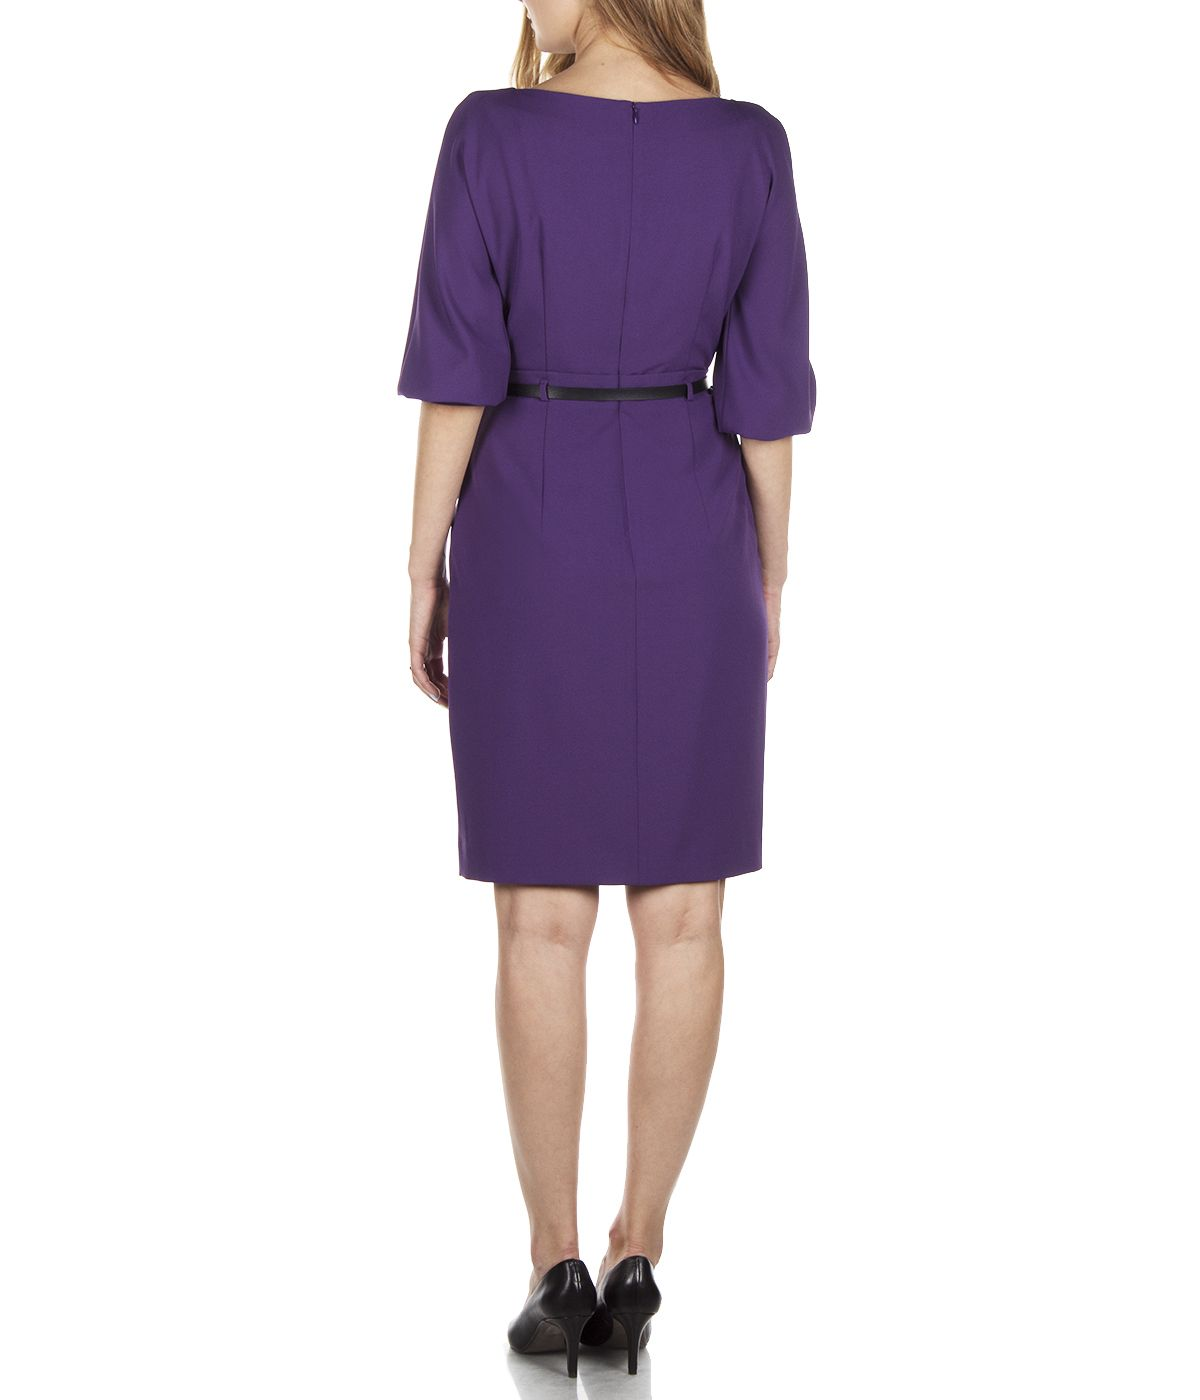 PURPLE LONG SLEEVES DRESS WITH LEATHER BELT 3